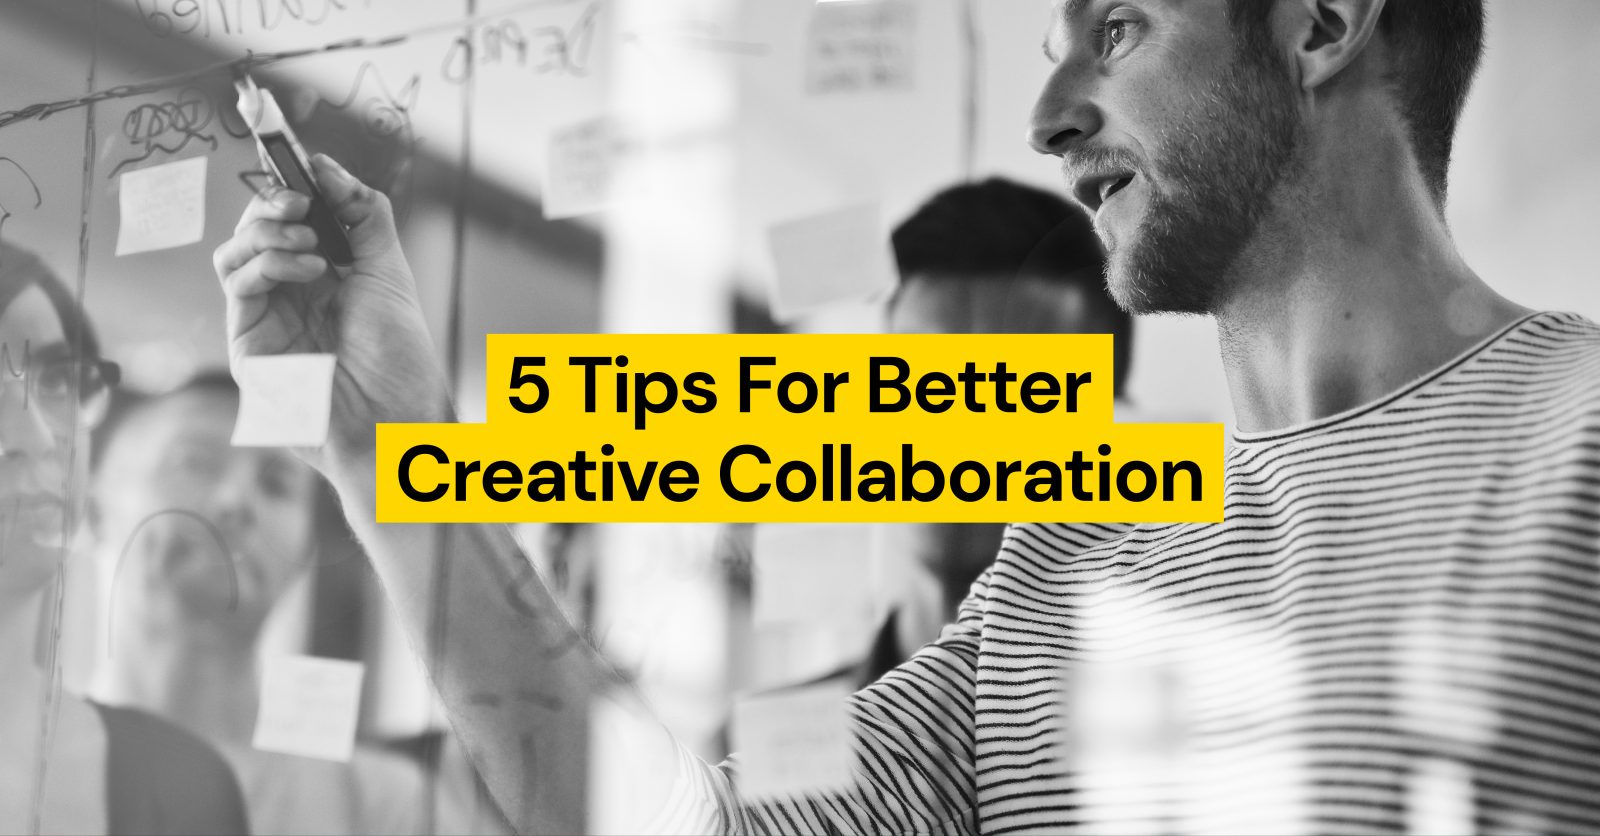 5 Tips For Better Creative Collaboration